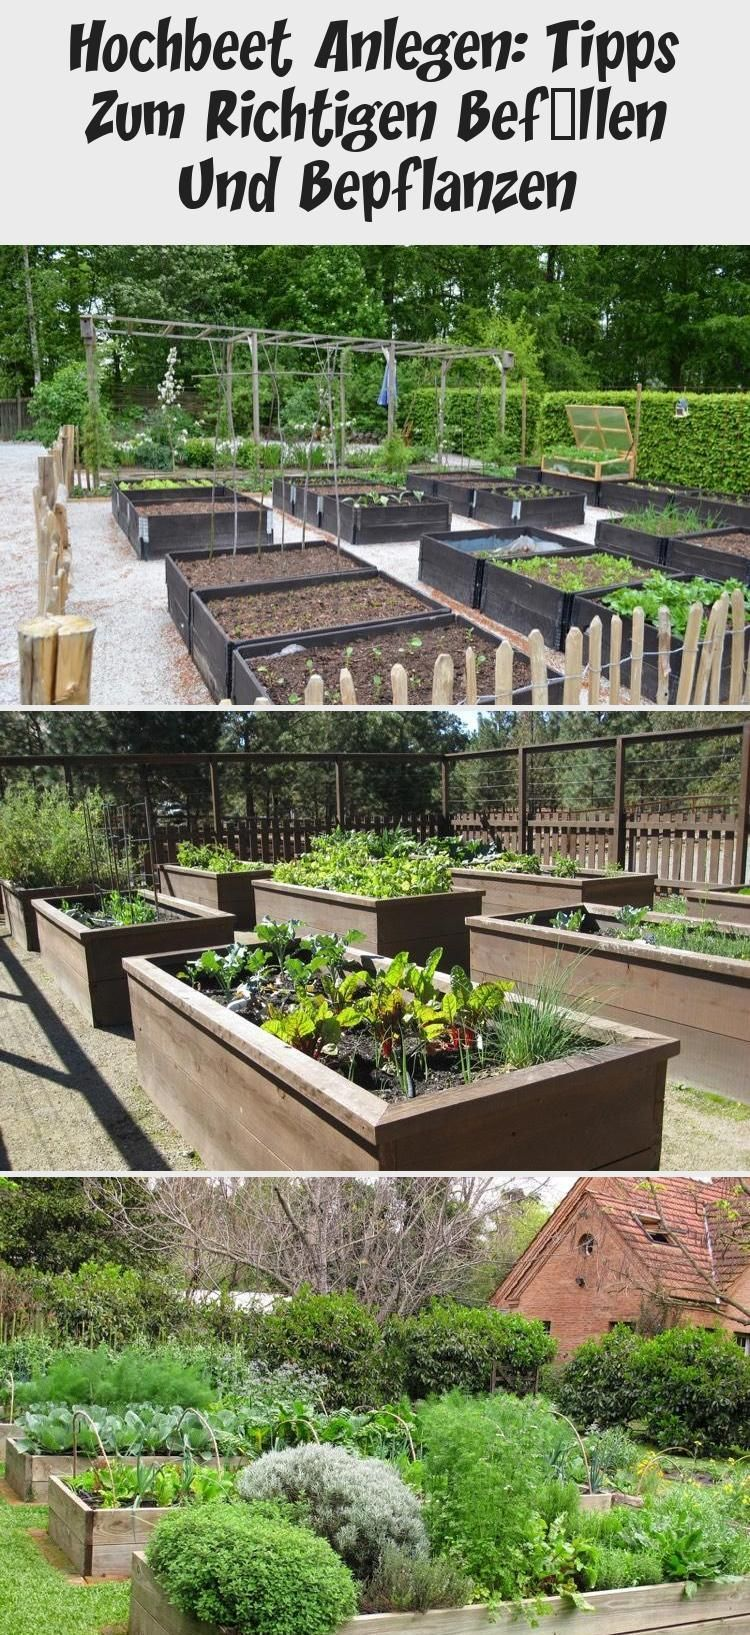 Creating A Raised Bed Tips For Correct Filling And Planting Raised Bed Planting In 2020 Mit Bildern Hochbeet Bepflanzung Hochbeet Anlegen